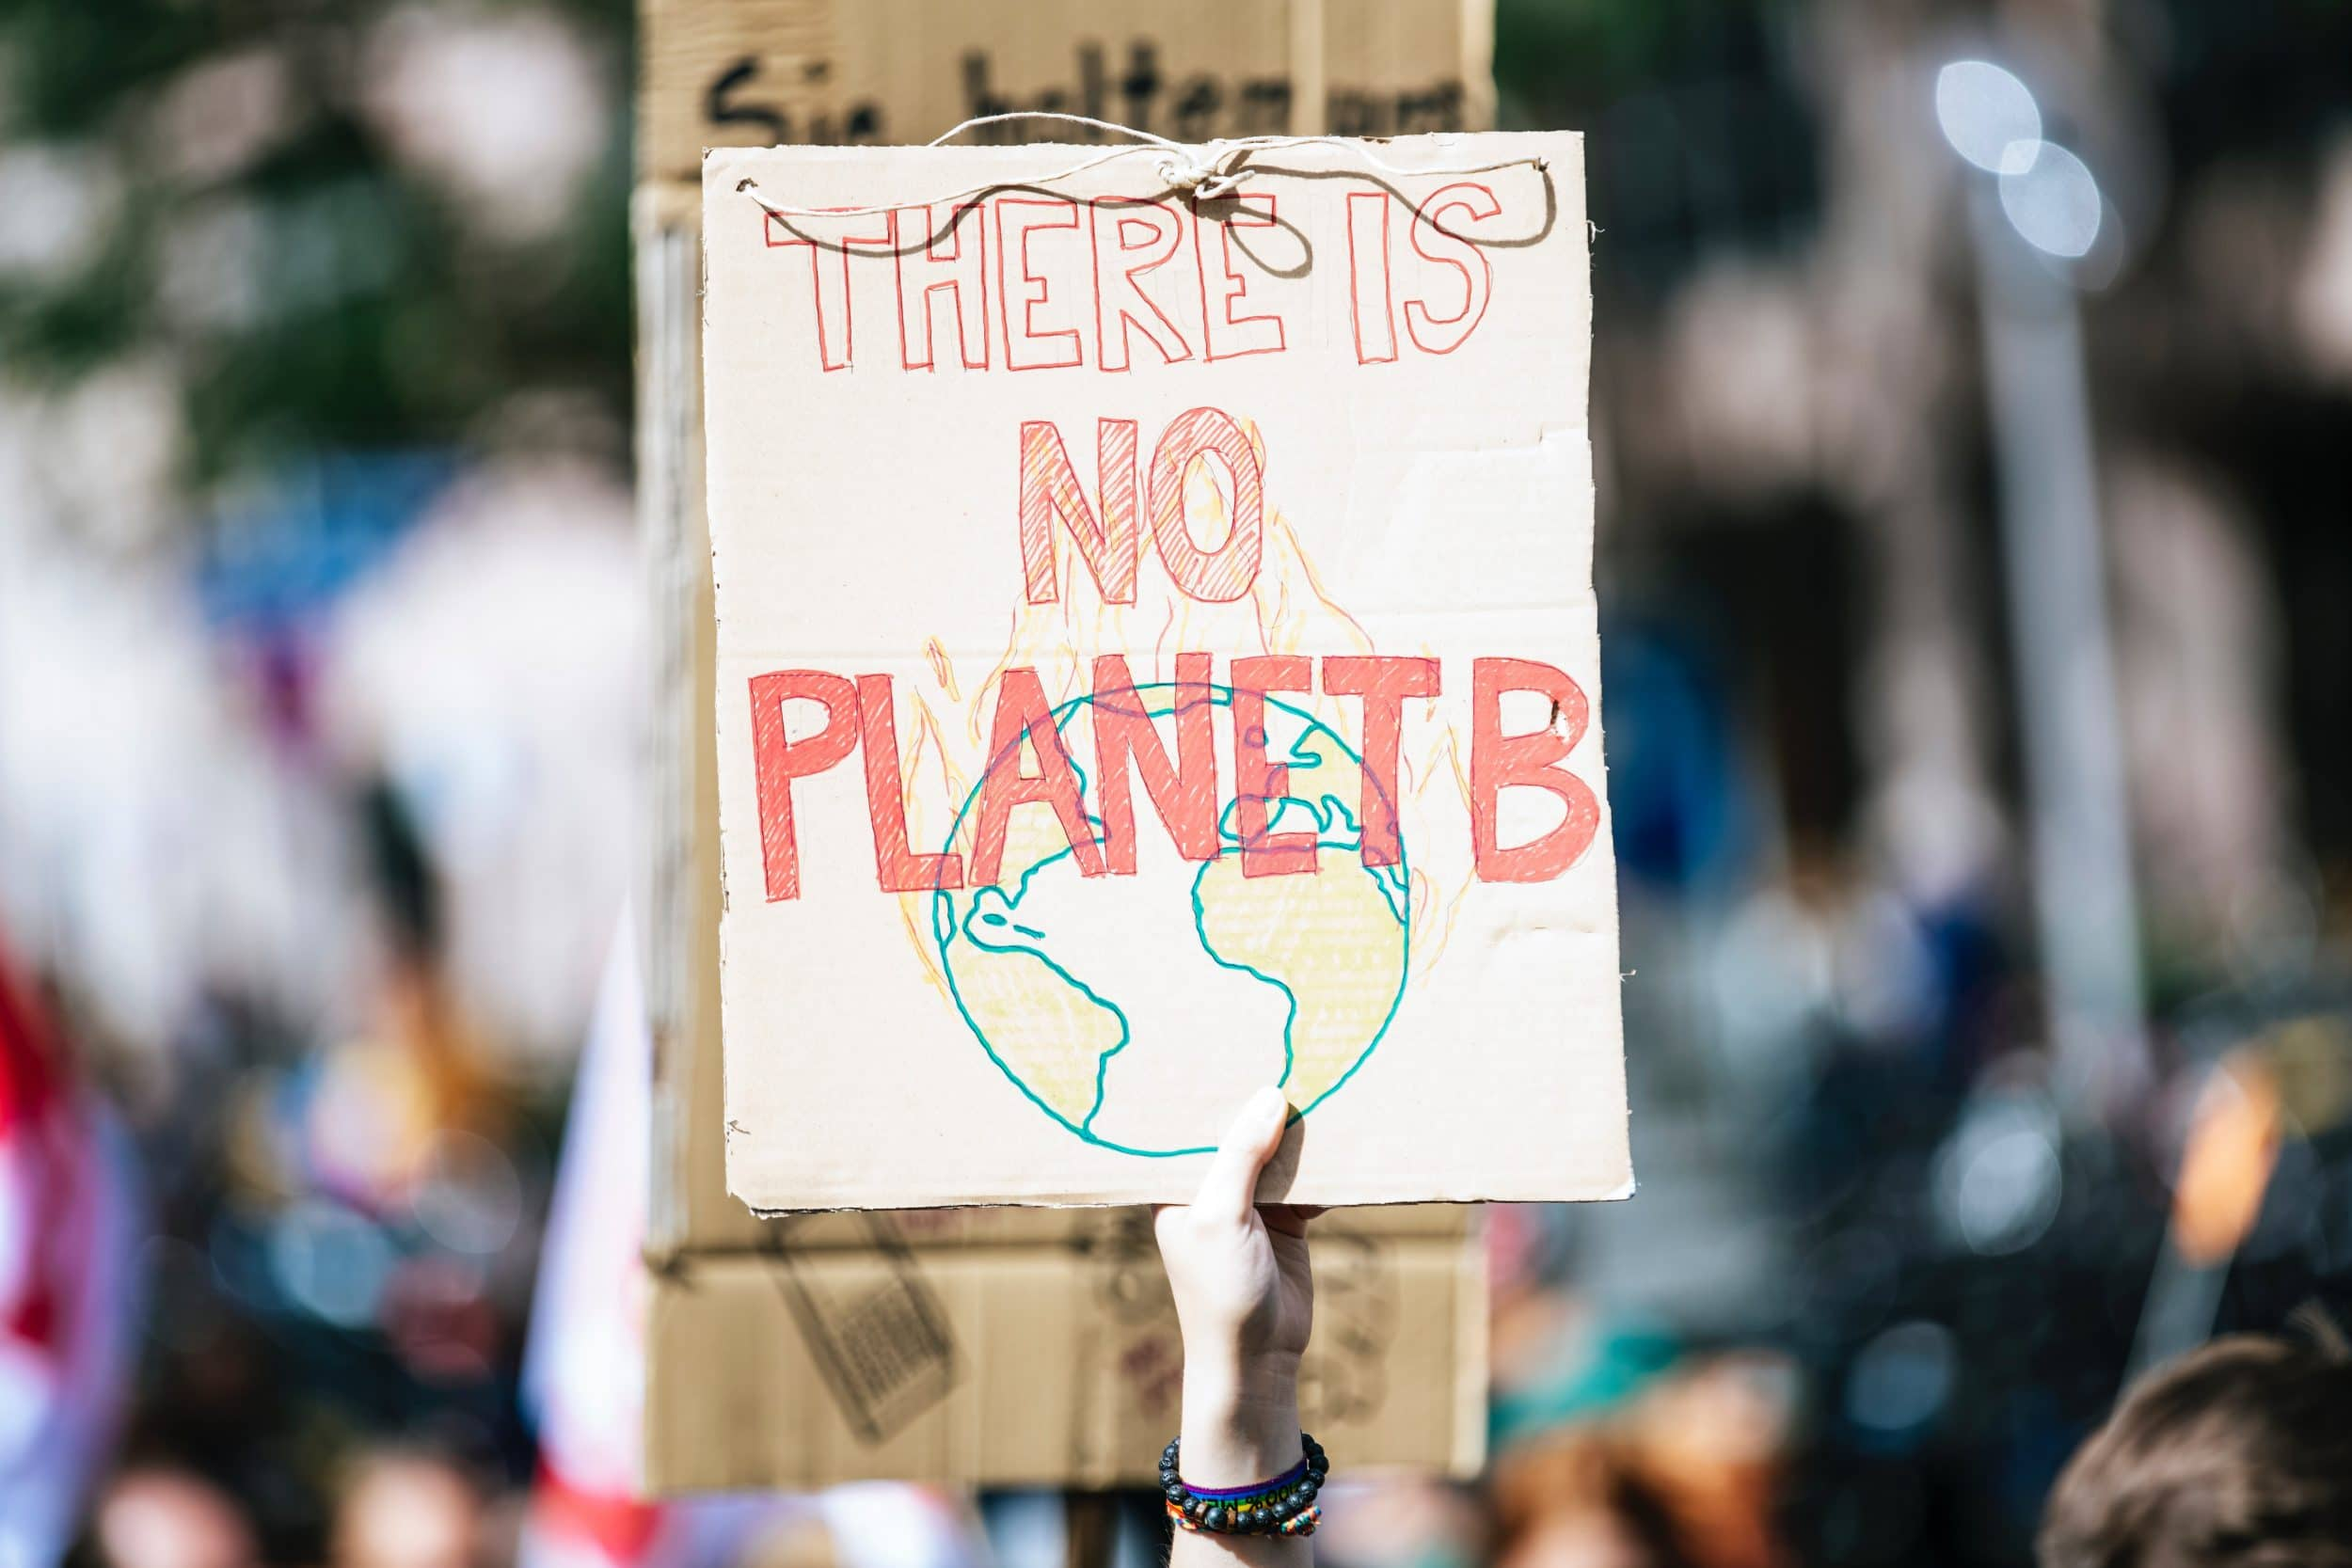 Placard reading 'There is no planet b'